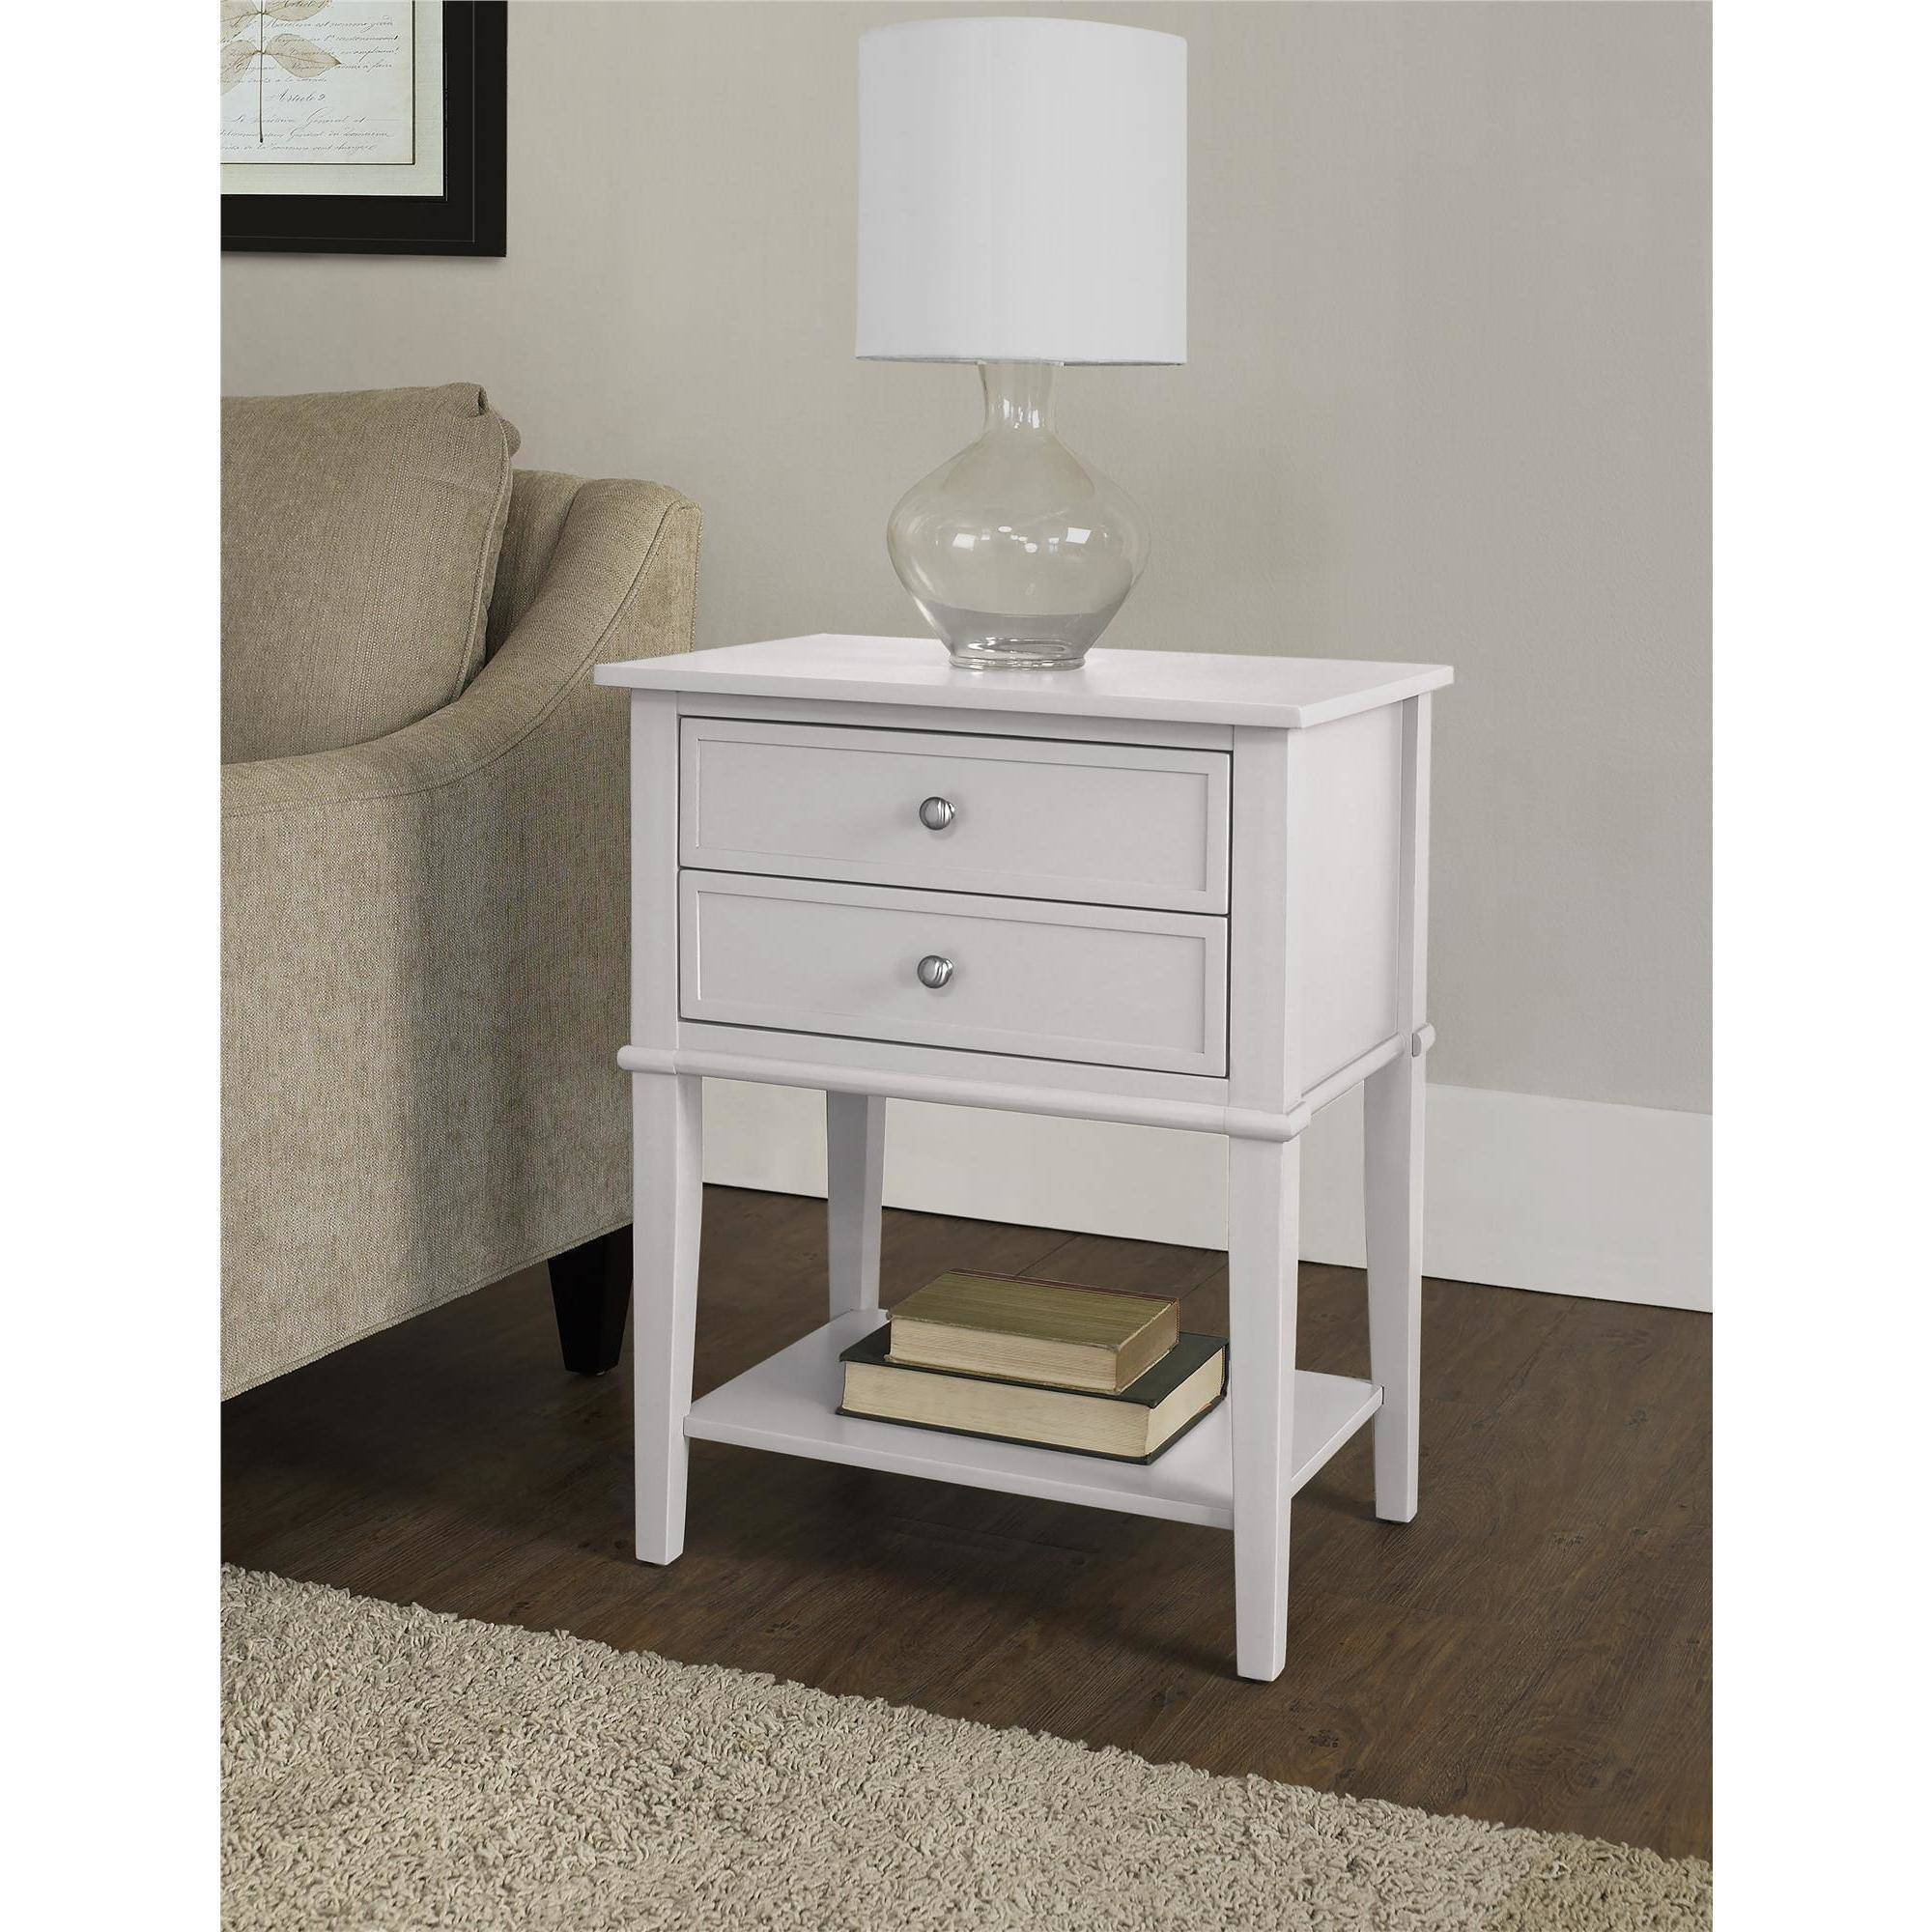 altra franklin accent table with drawers white ture marble coffee toronto console decor round living room chest yellow small bedroom tables sofa clearance outdoor grill island